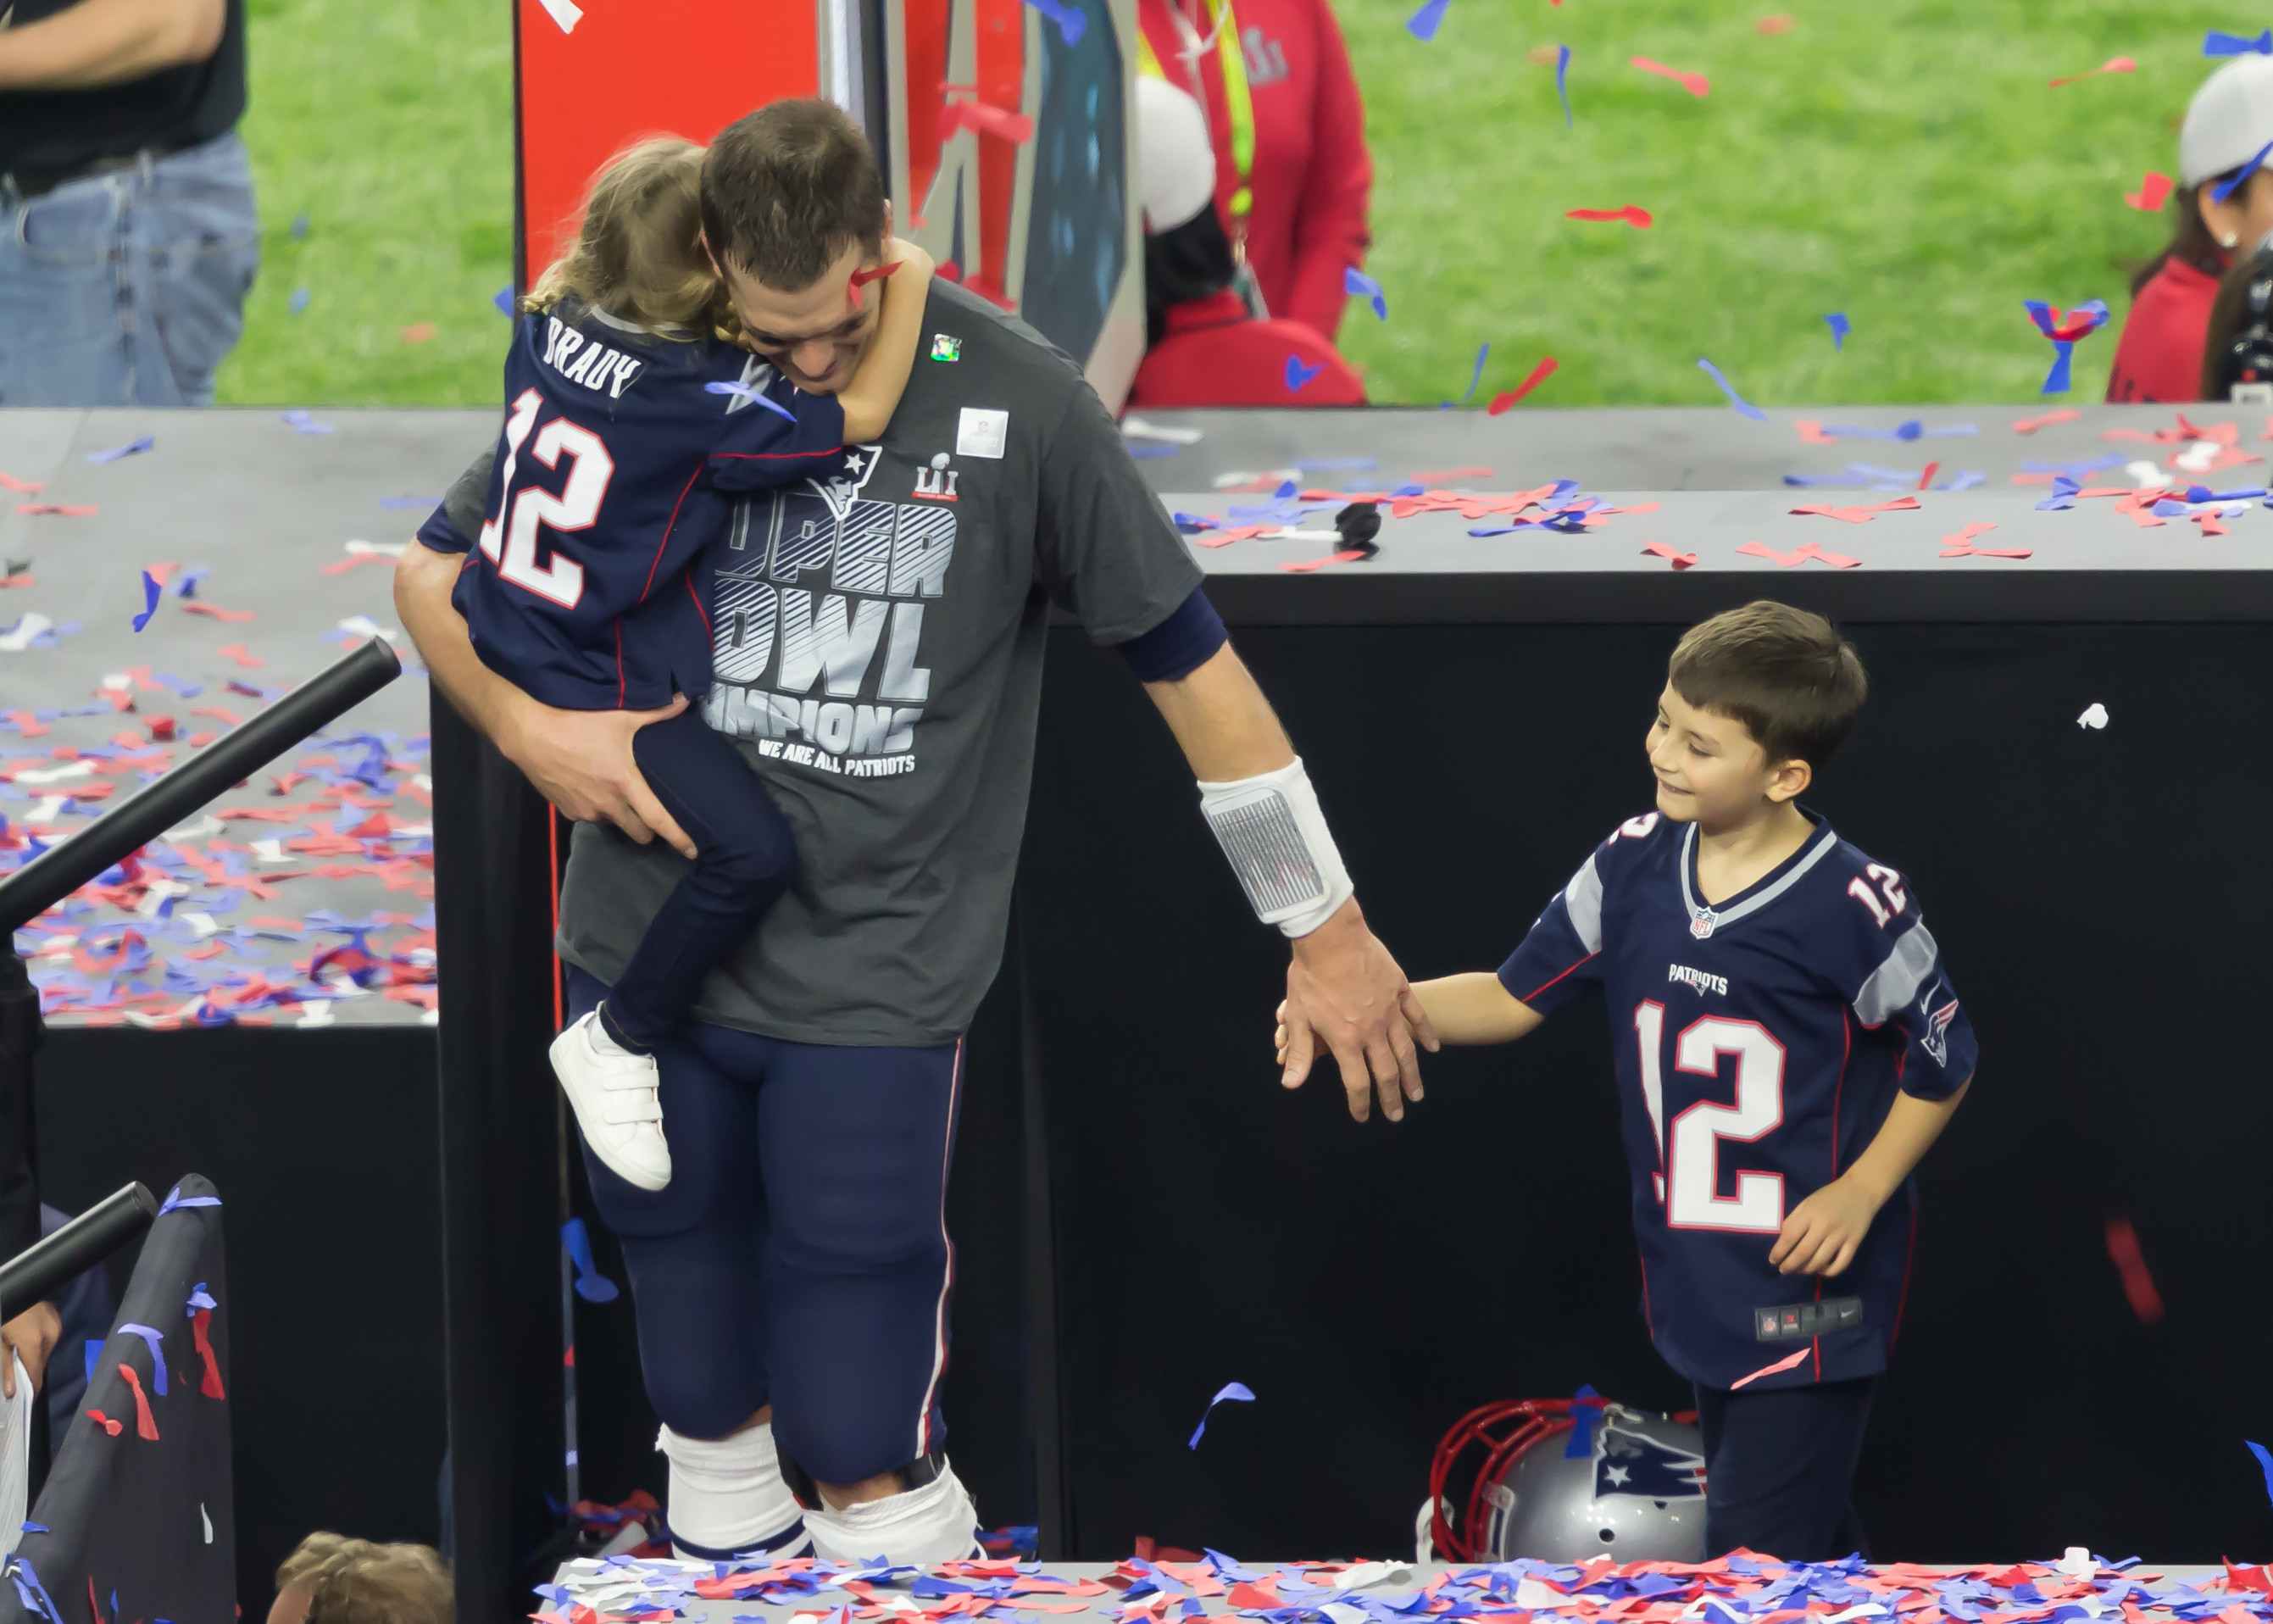 Tom Brady celebrating with his kids after a Super Bowl